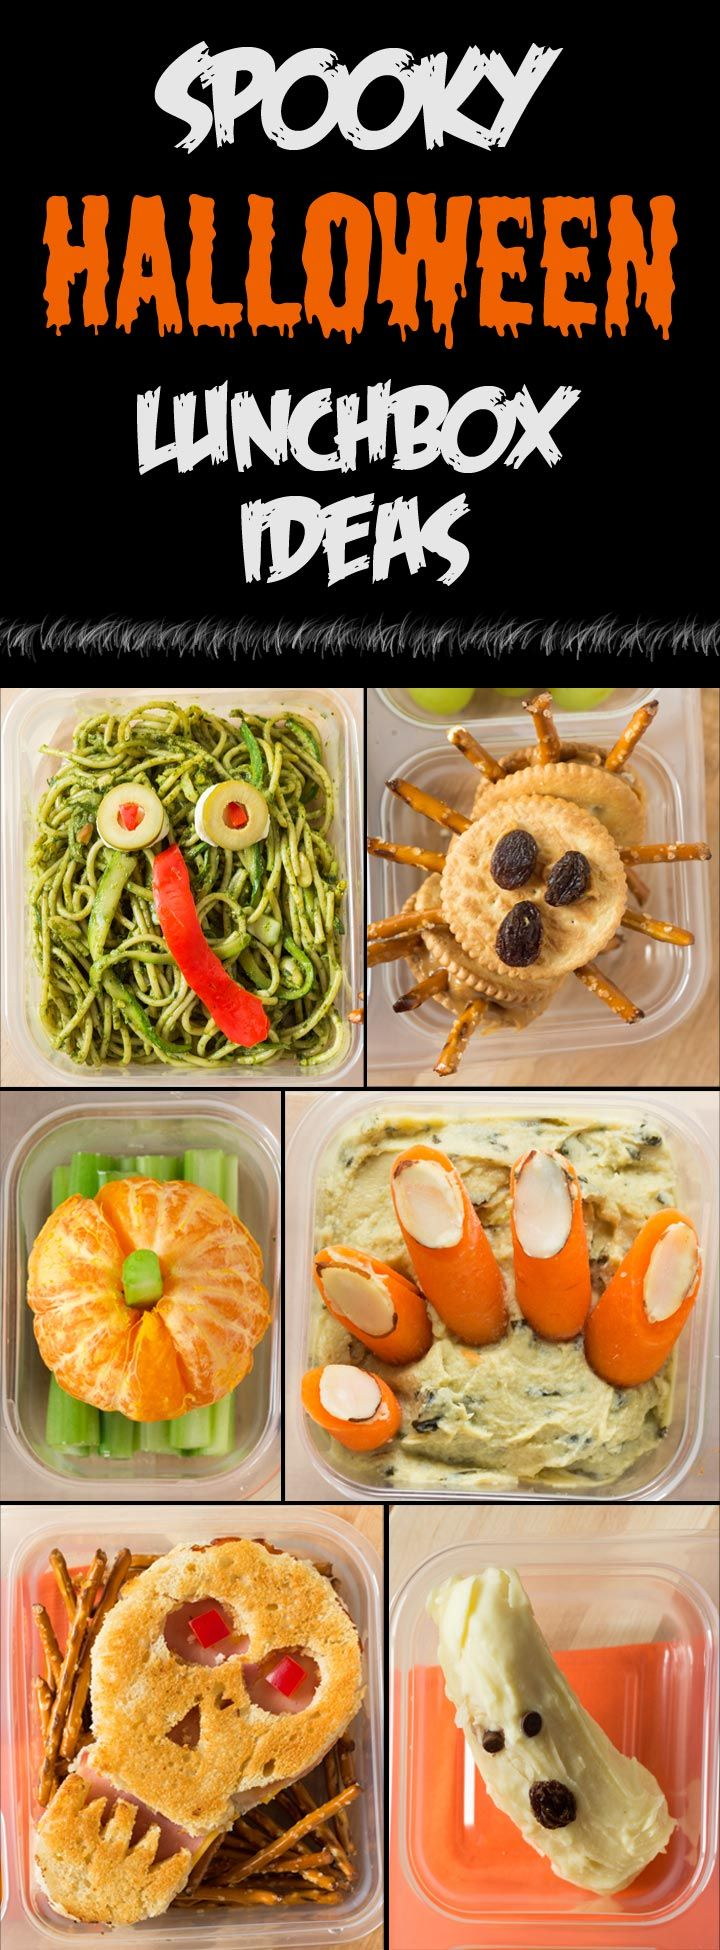 Spooky Halloween Lunchbox Ideas - creepy, crawly, and healthy ways to pack lunchboxes for Halloween!